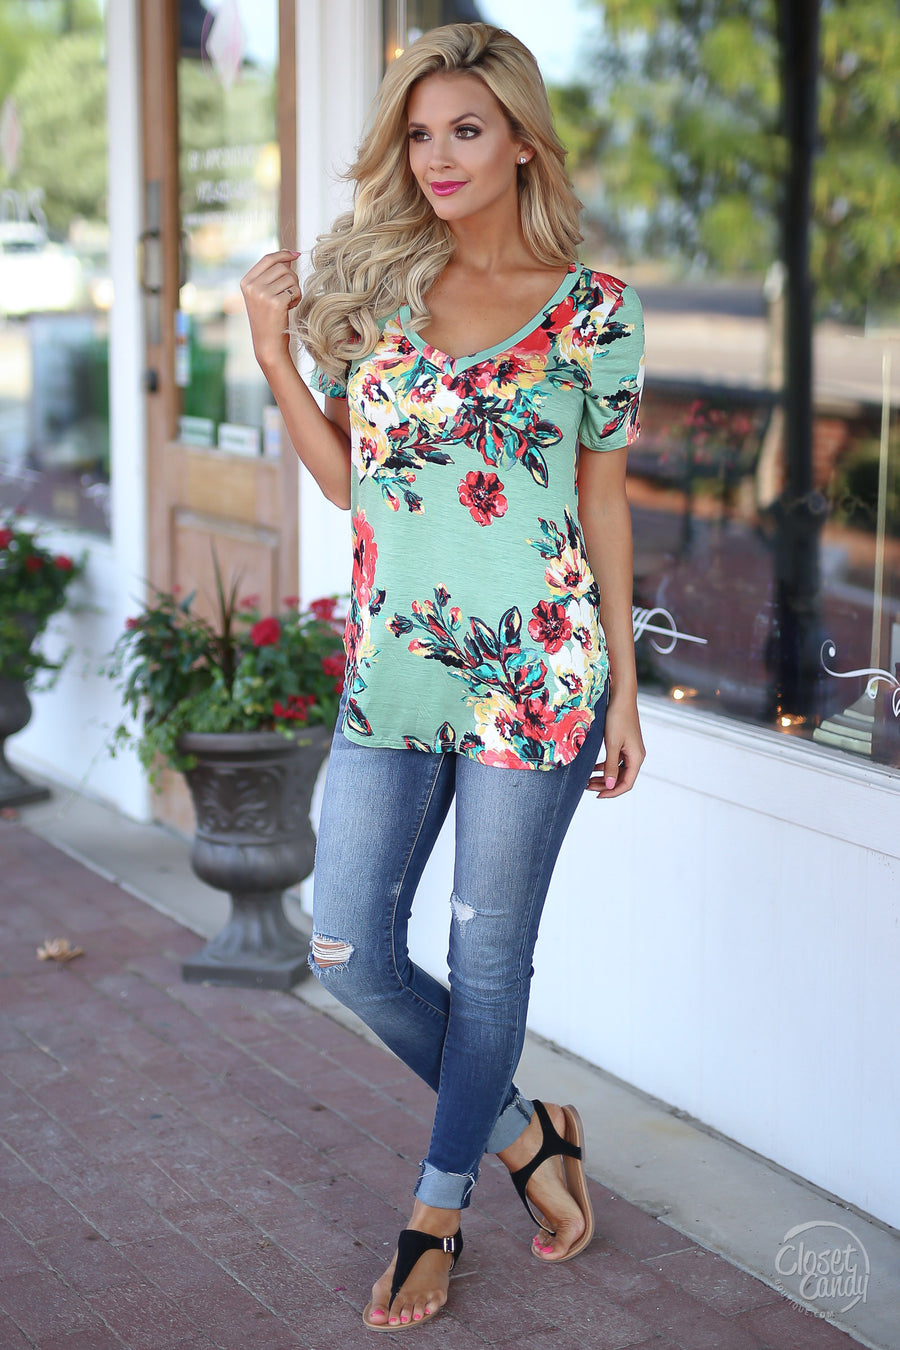 Closet Candy Boutique - Like a Back Road Top, v-neck floral short sleeve top, casual and cute shirt for spring and summer